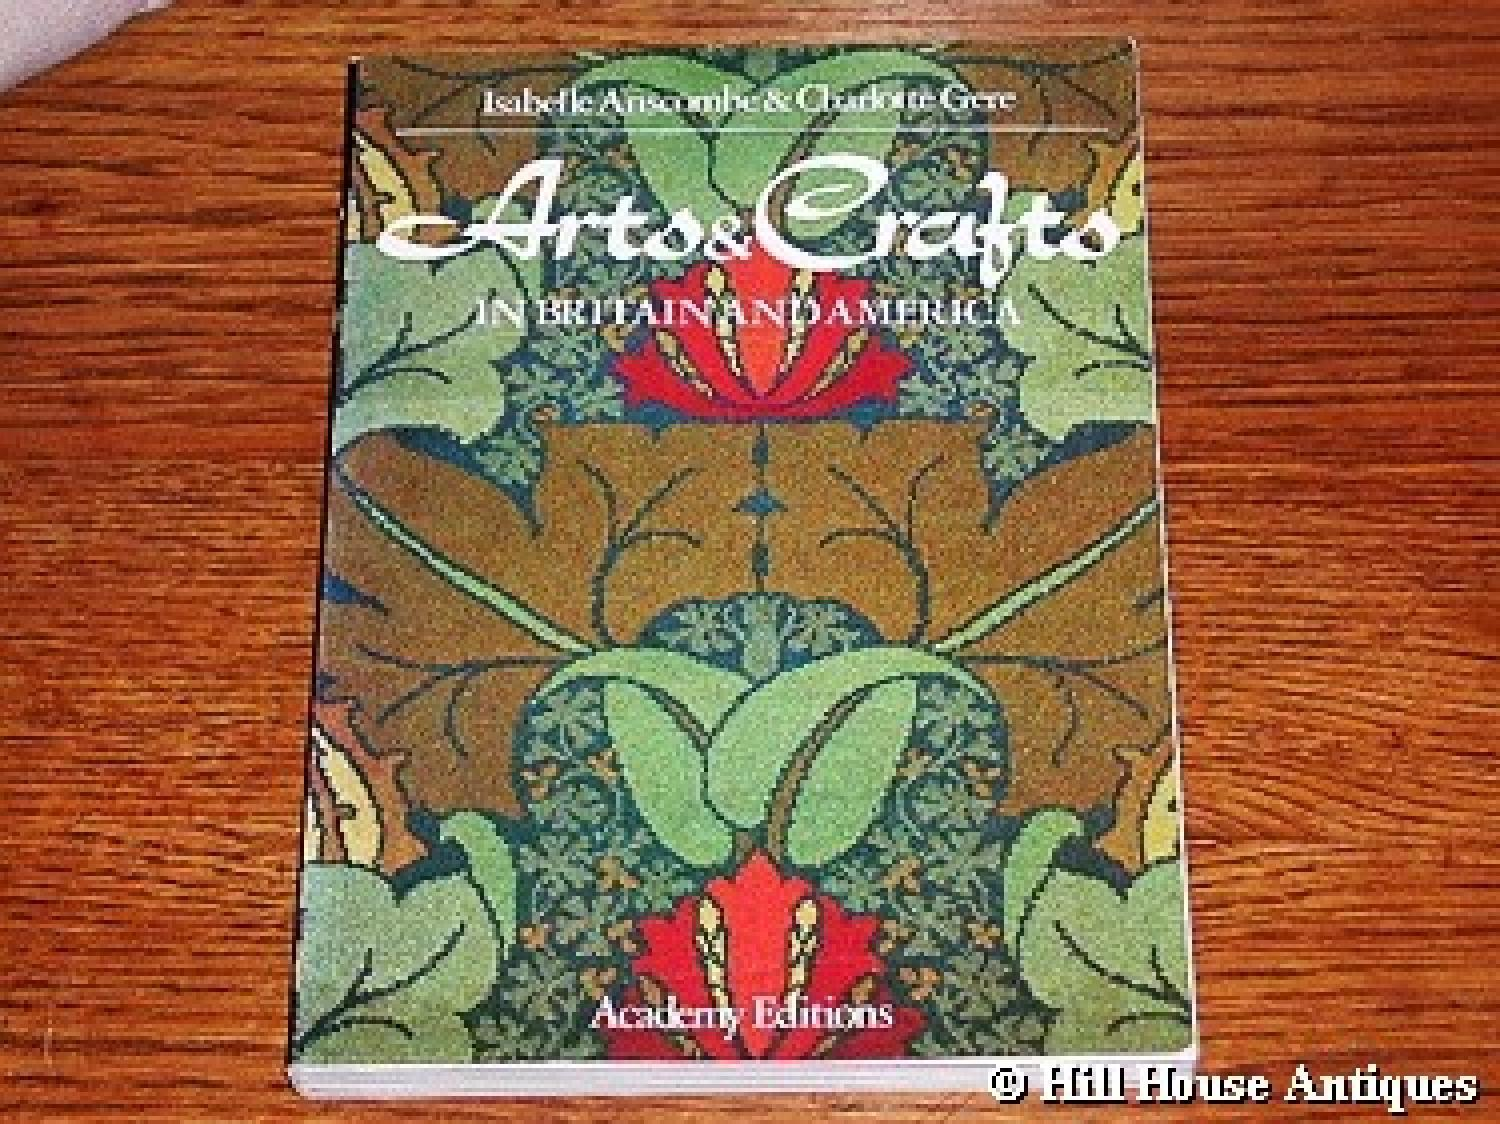 Arts & Crafts o/p book